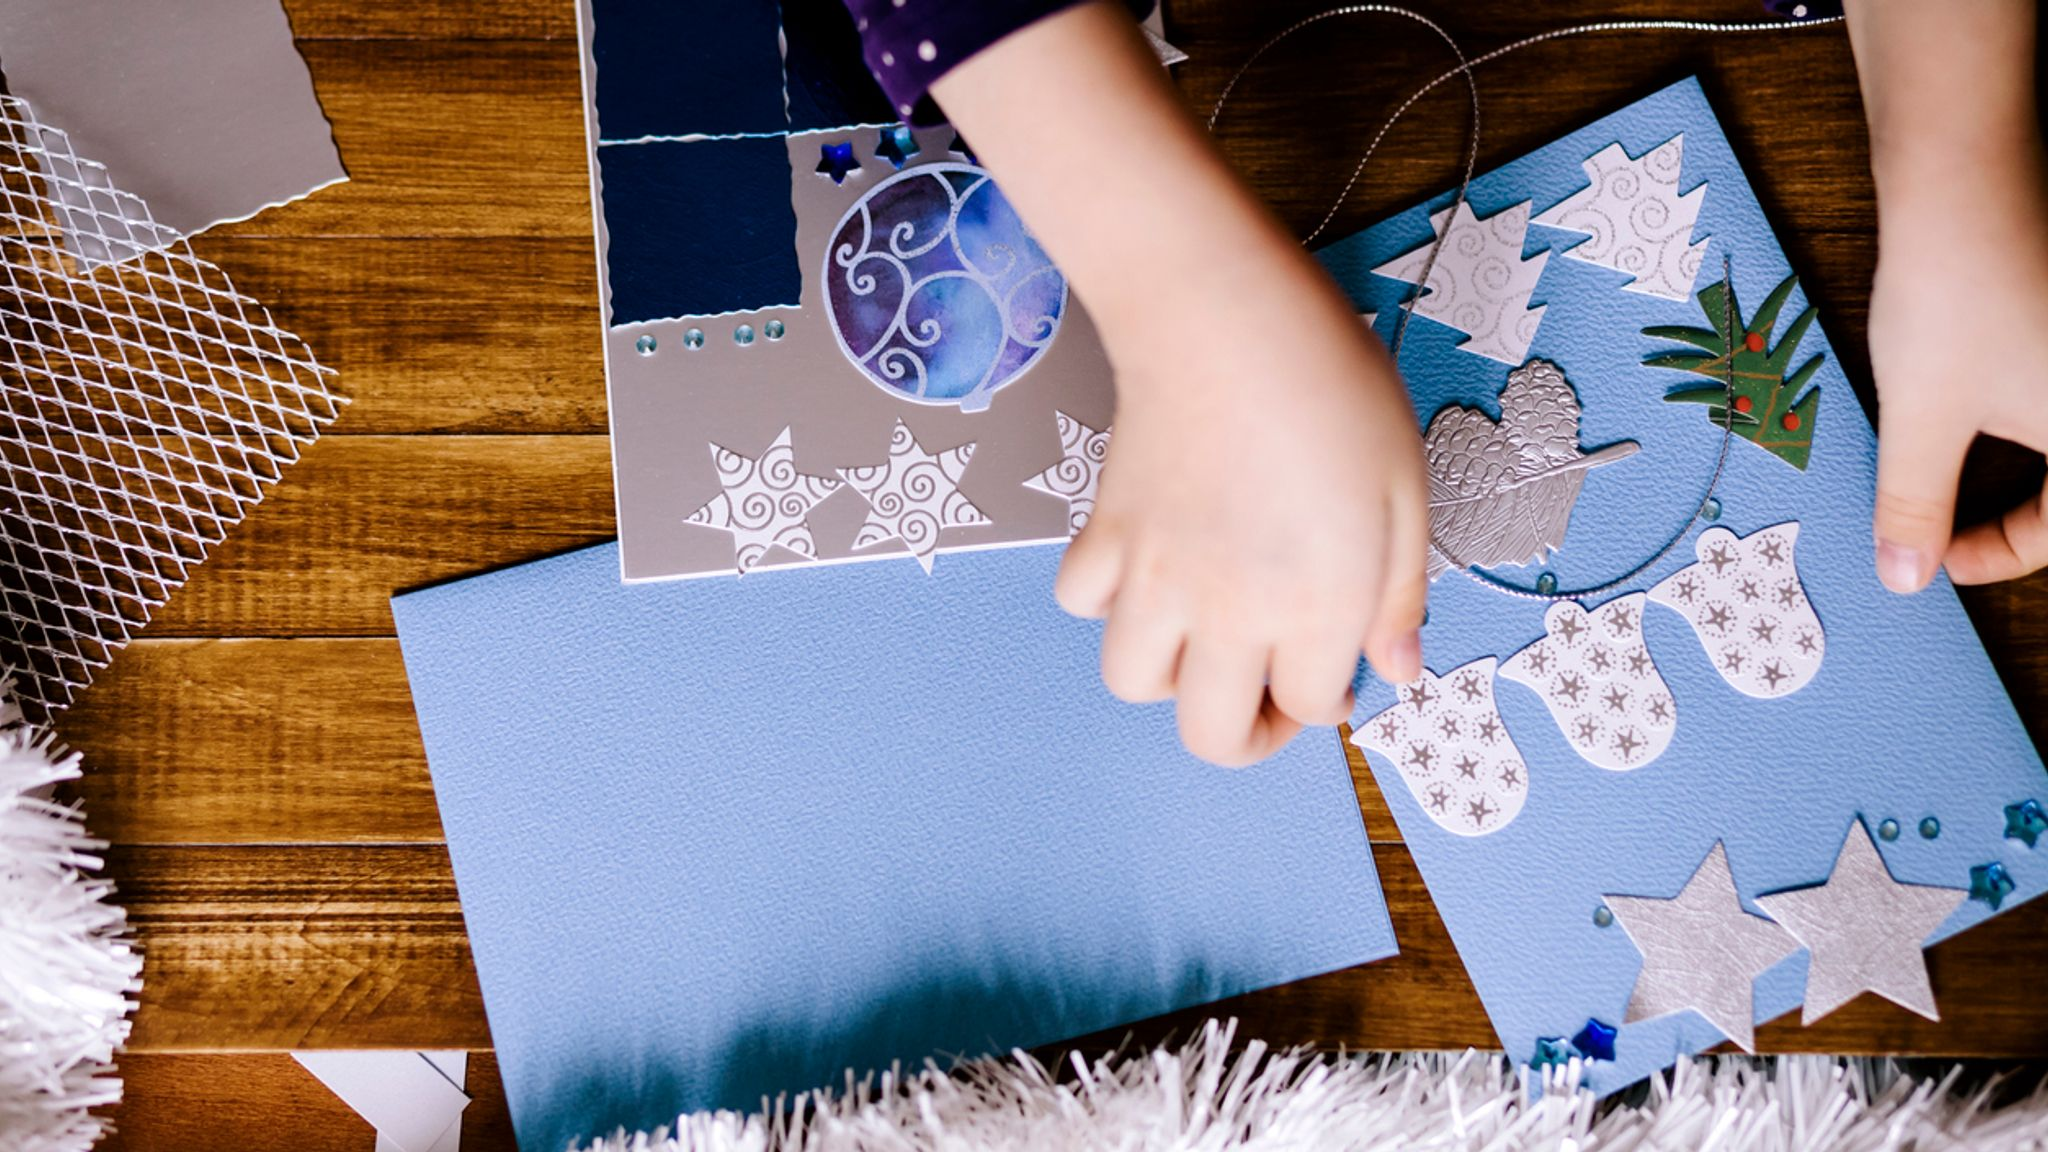 School bans children from sending Christmas cards to protect the environment